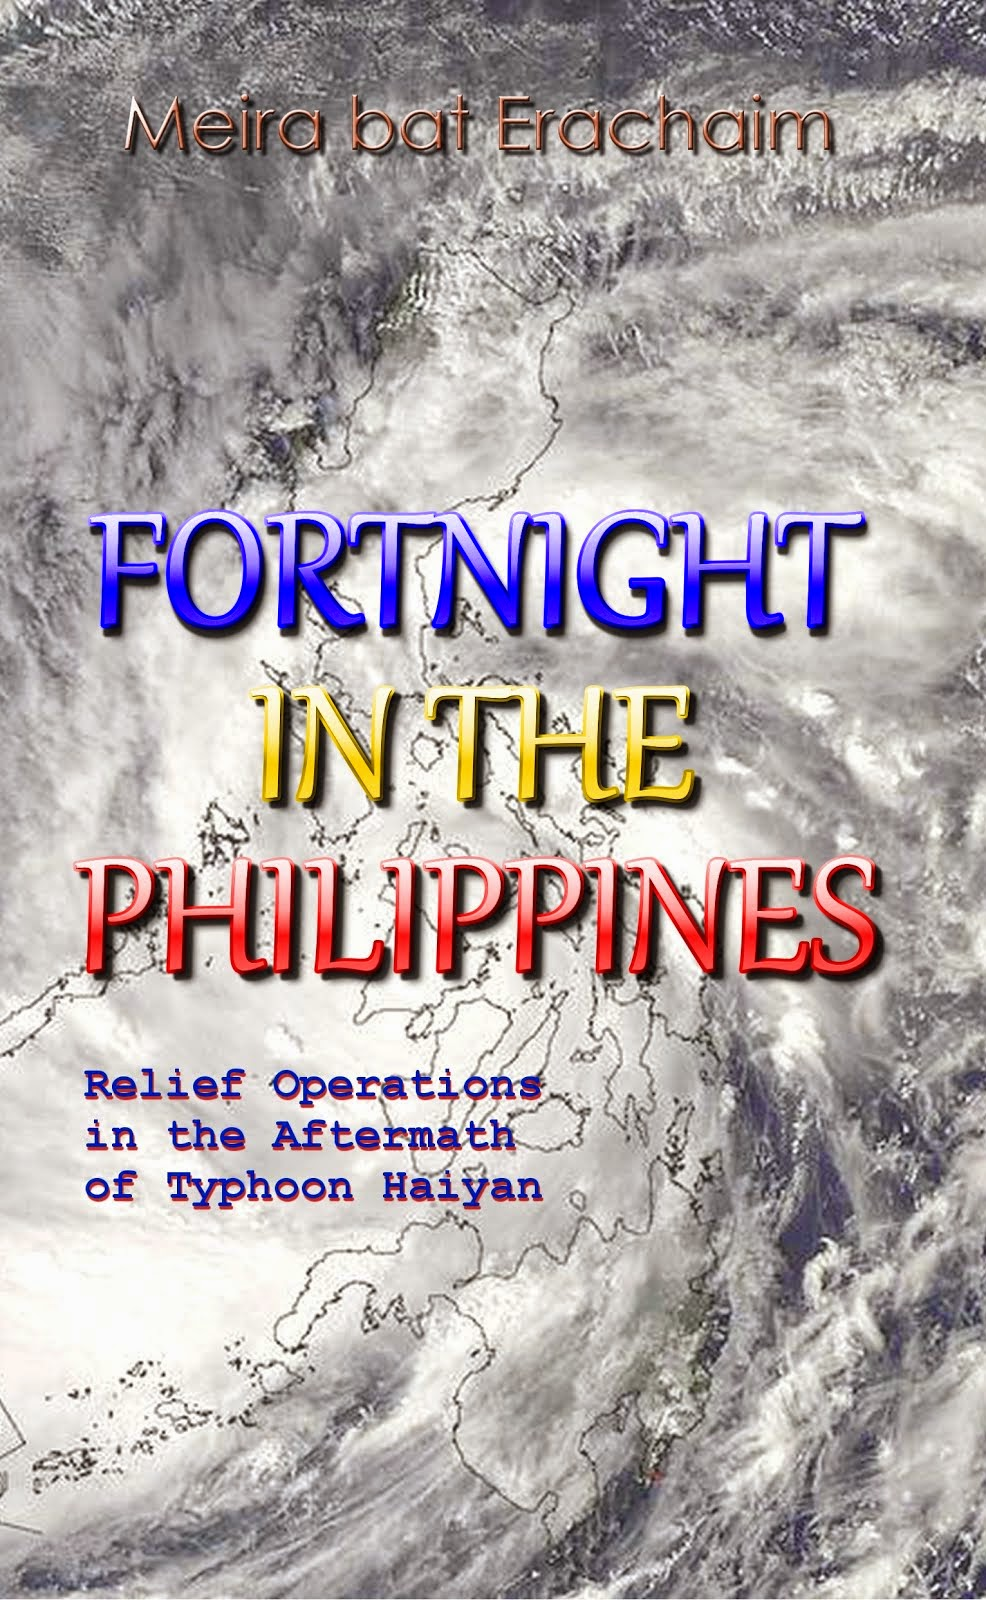 Fortnight in the Philippines